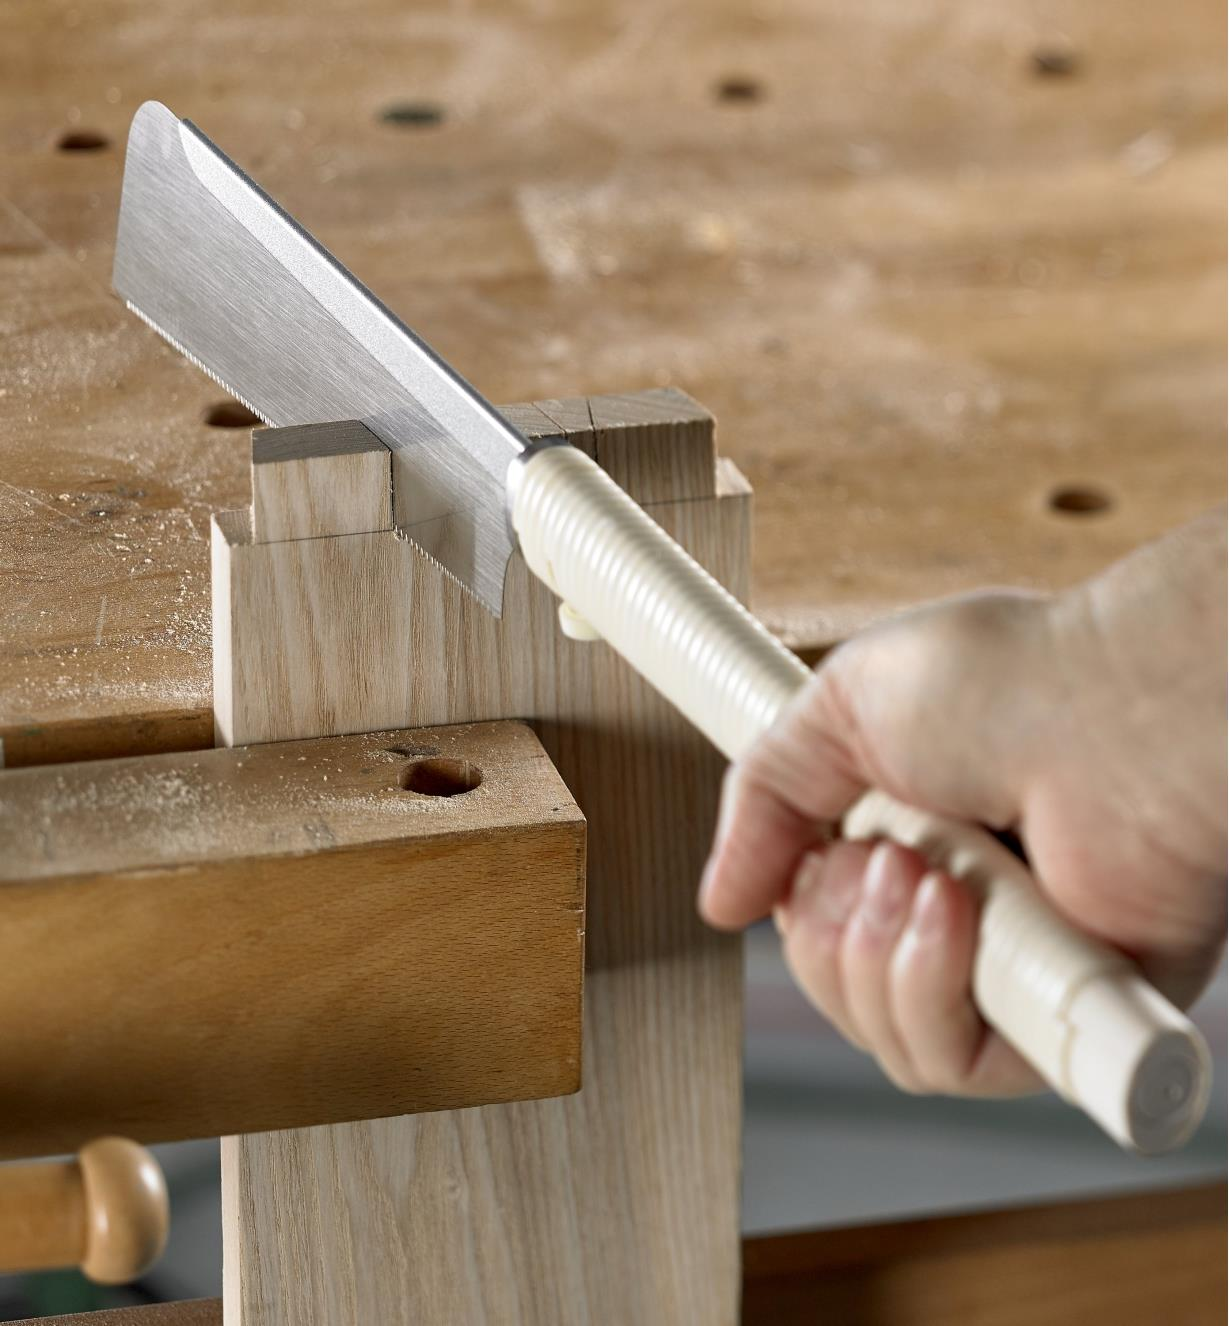 Using a dozuki to cut the pin sockets on the tail piece of a dovetail joint